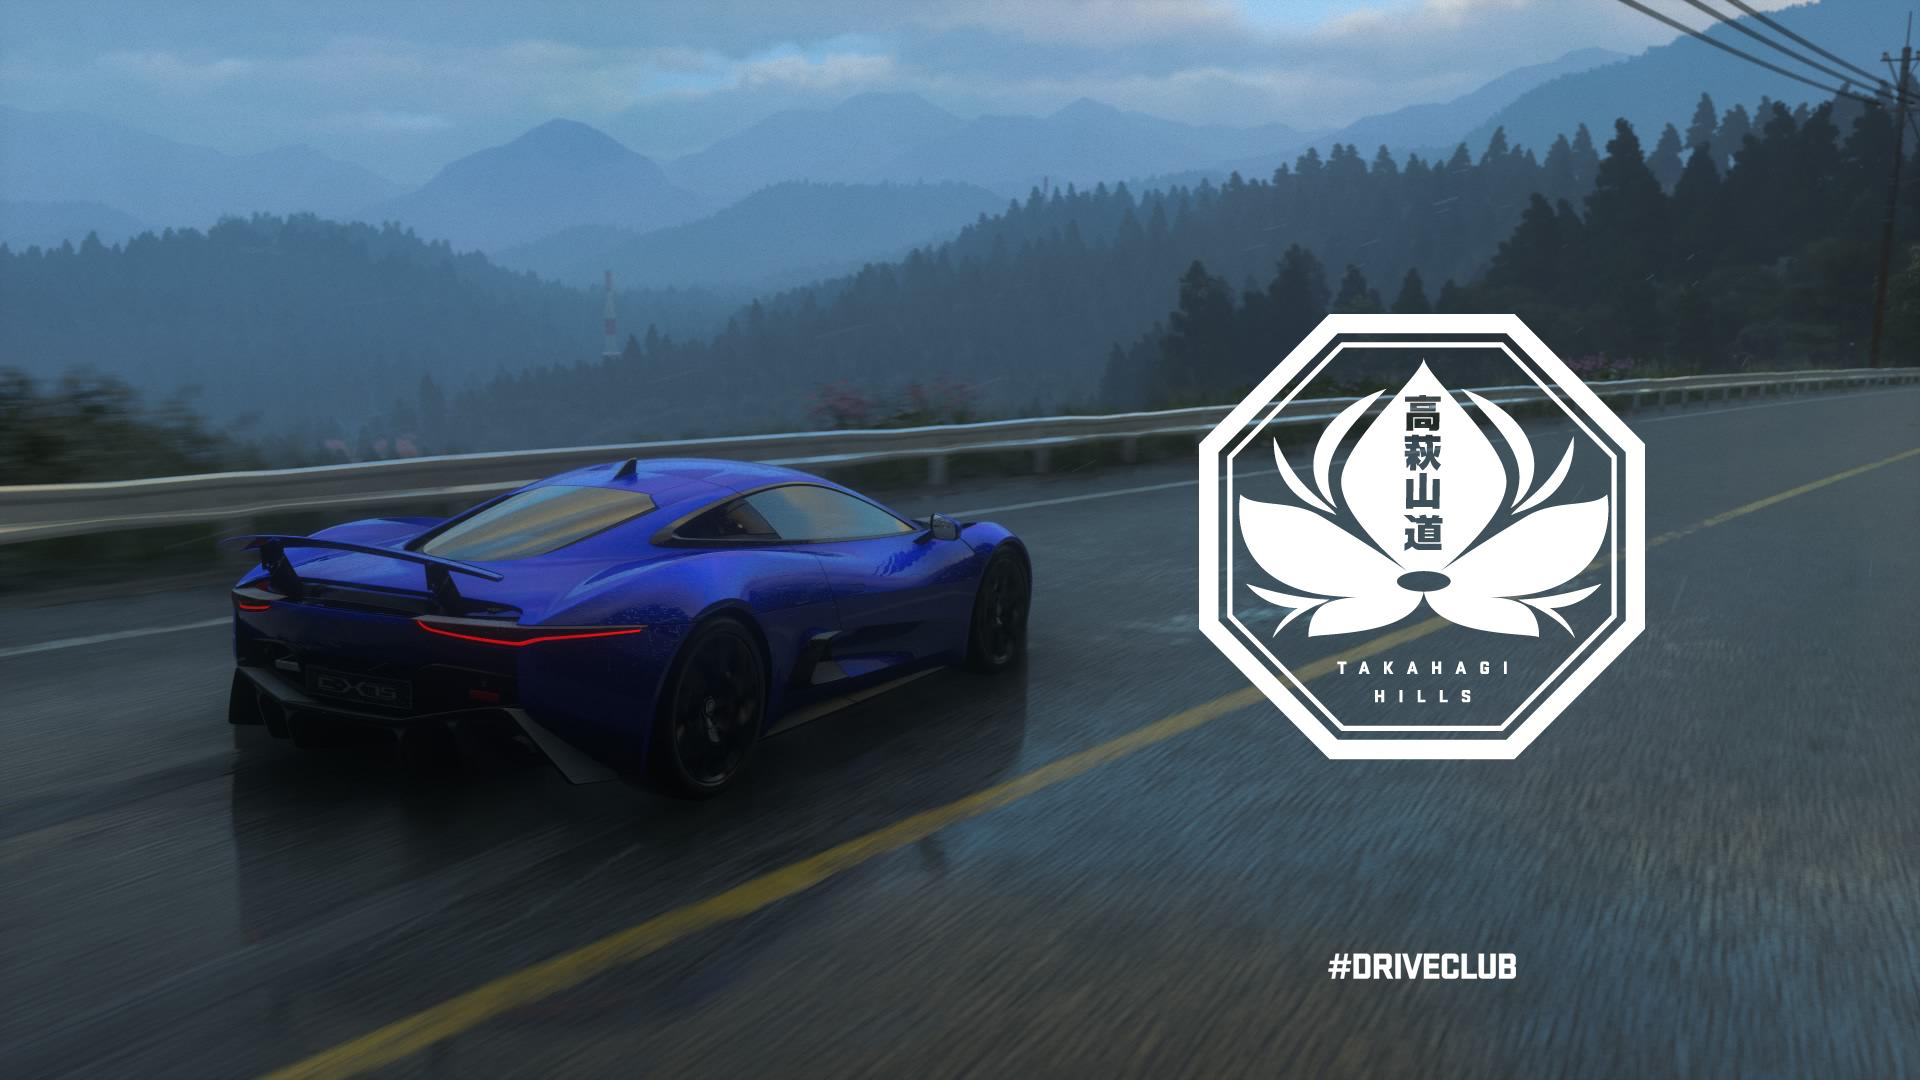 driveclub 1710115